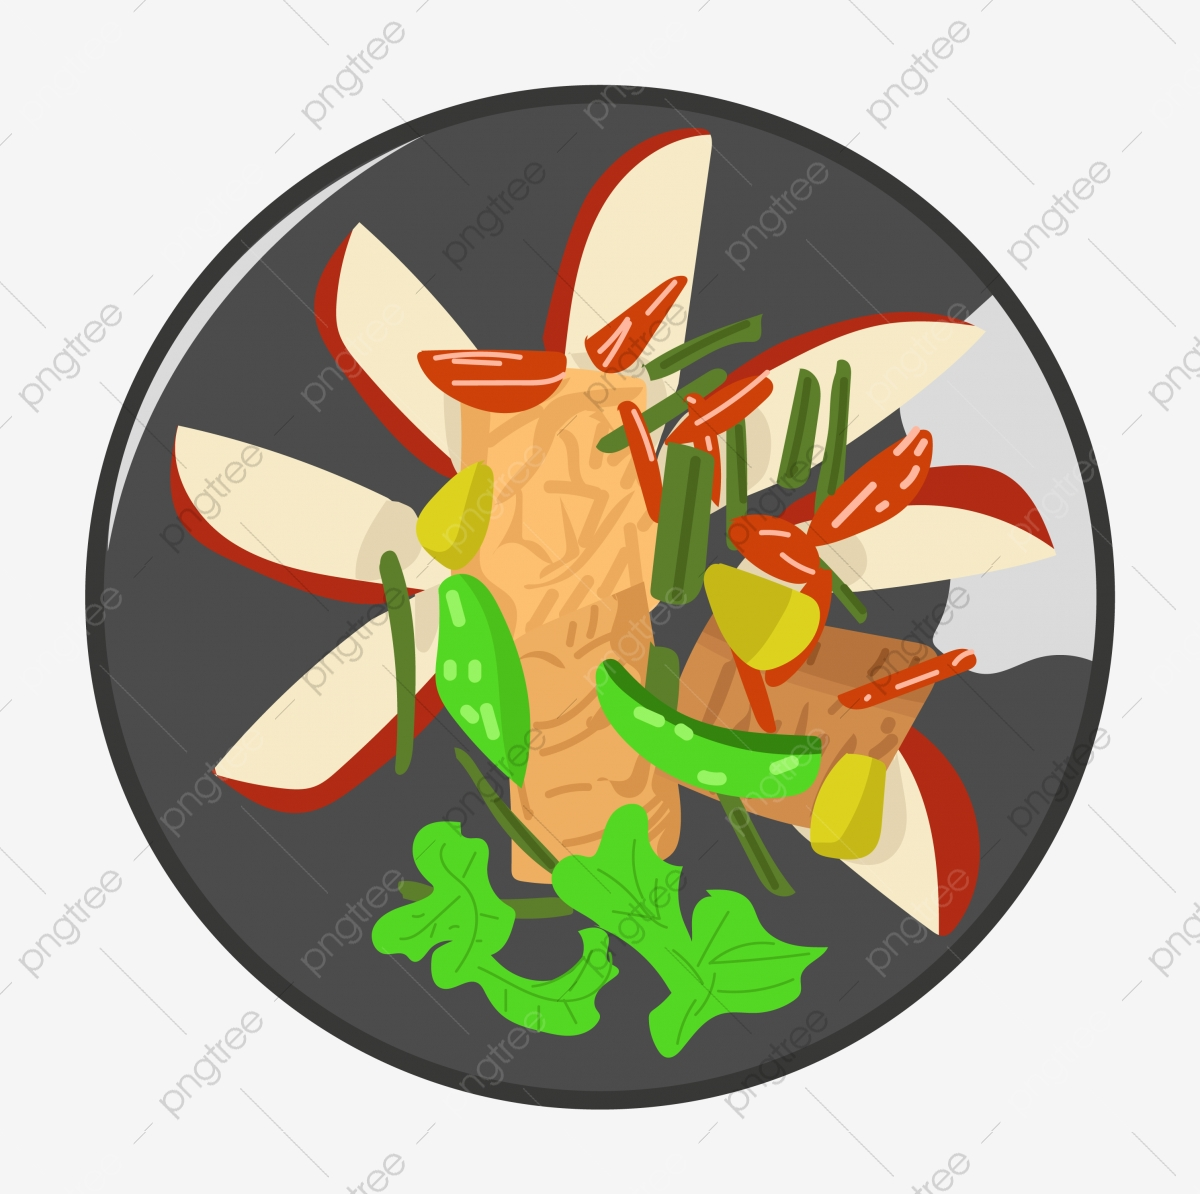 Red Egg Delicious Food Green Vegetables Red Pepper Black Plate Hand Drawn Food Cartoon Food Png And Vector With Transparent Background For Free Download